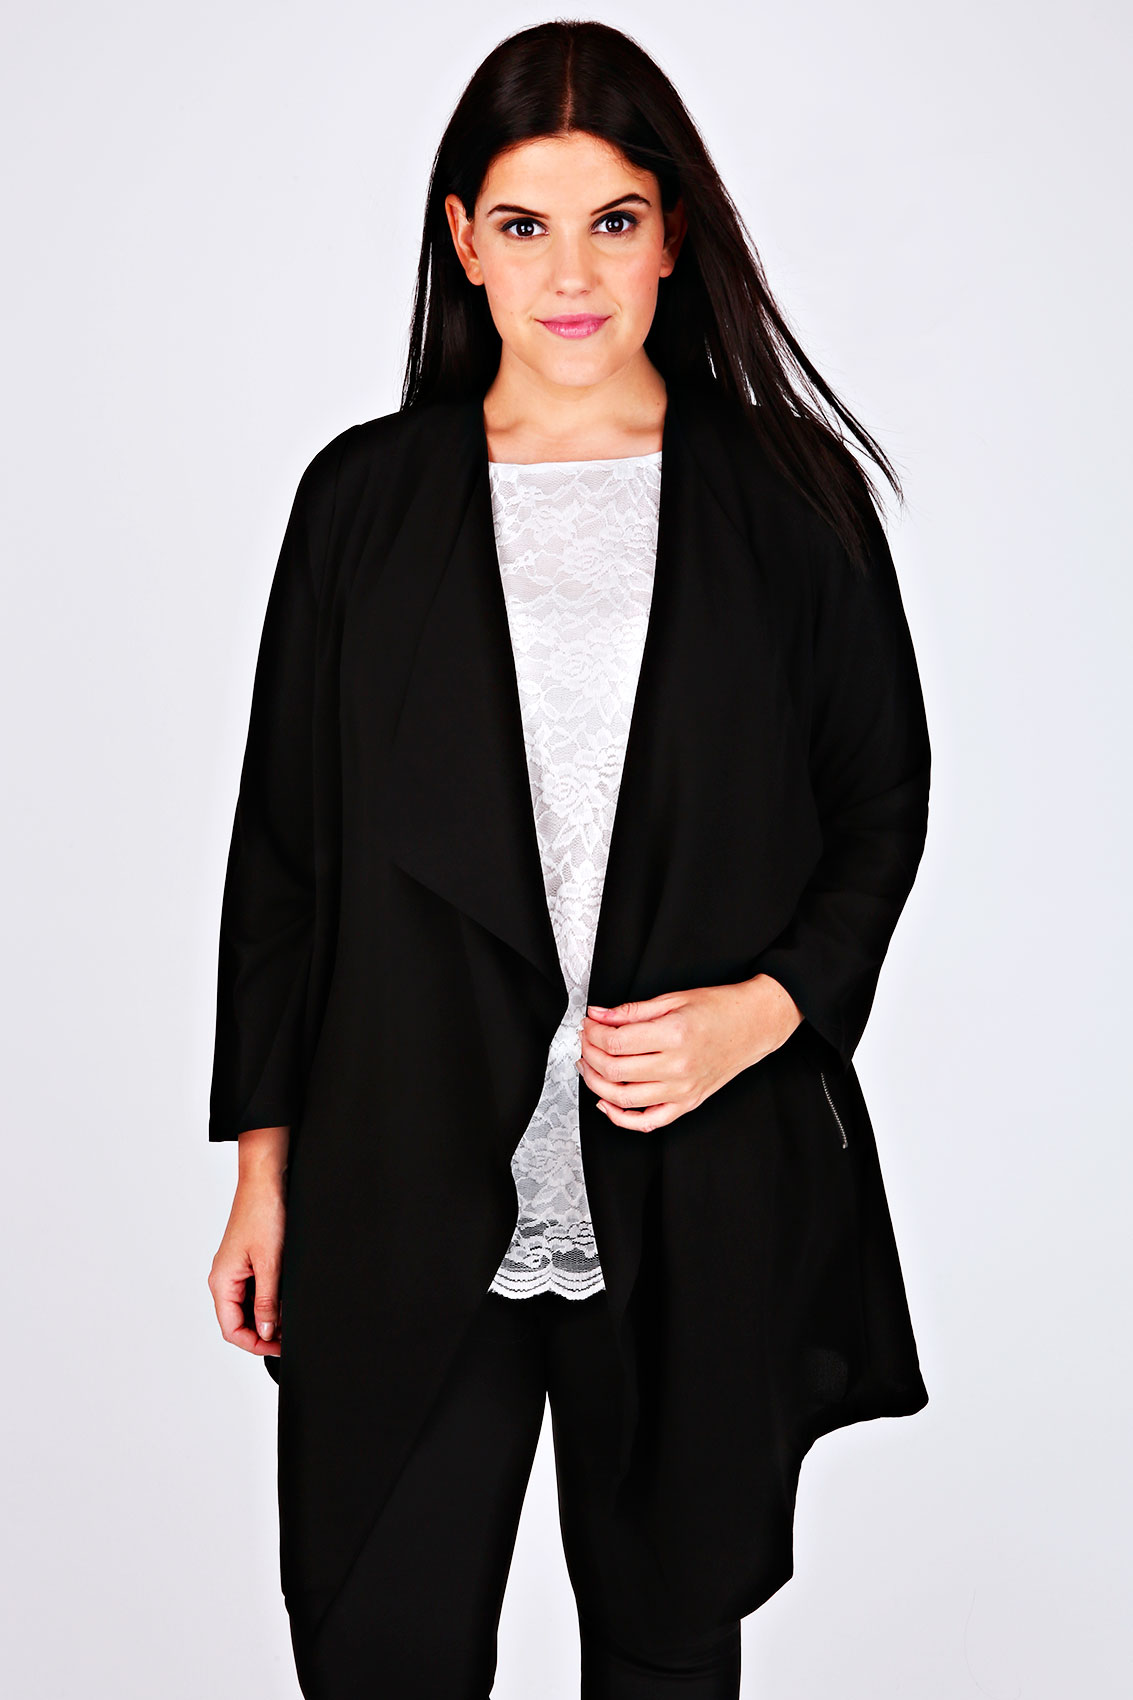 Shop for women's black blazer at loadingtag.ga Next day delivery and free returns available. s of products online. Buy women's black blazer now!